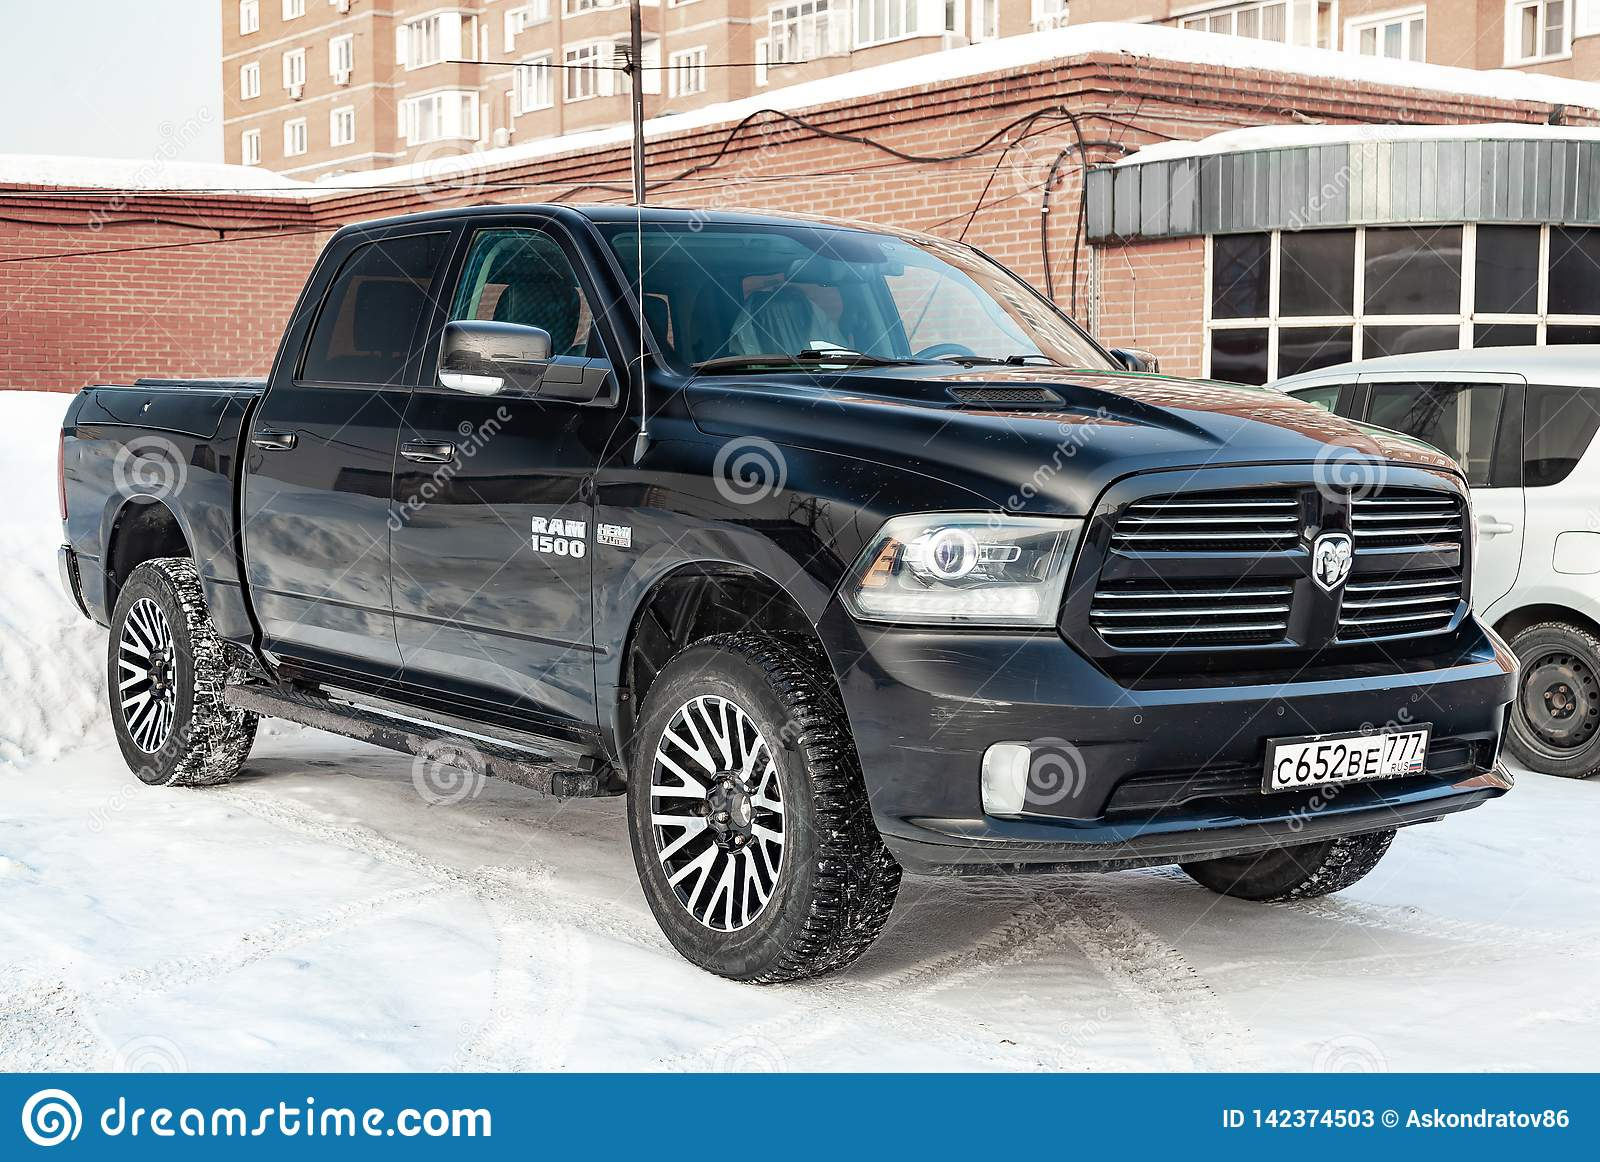 Black Dodge Ram with an engine of 5.7 liters front view on the car parking with snow background